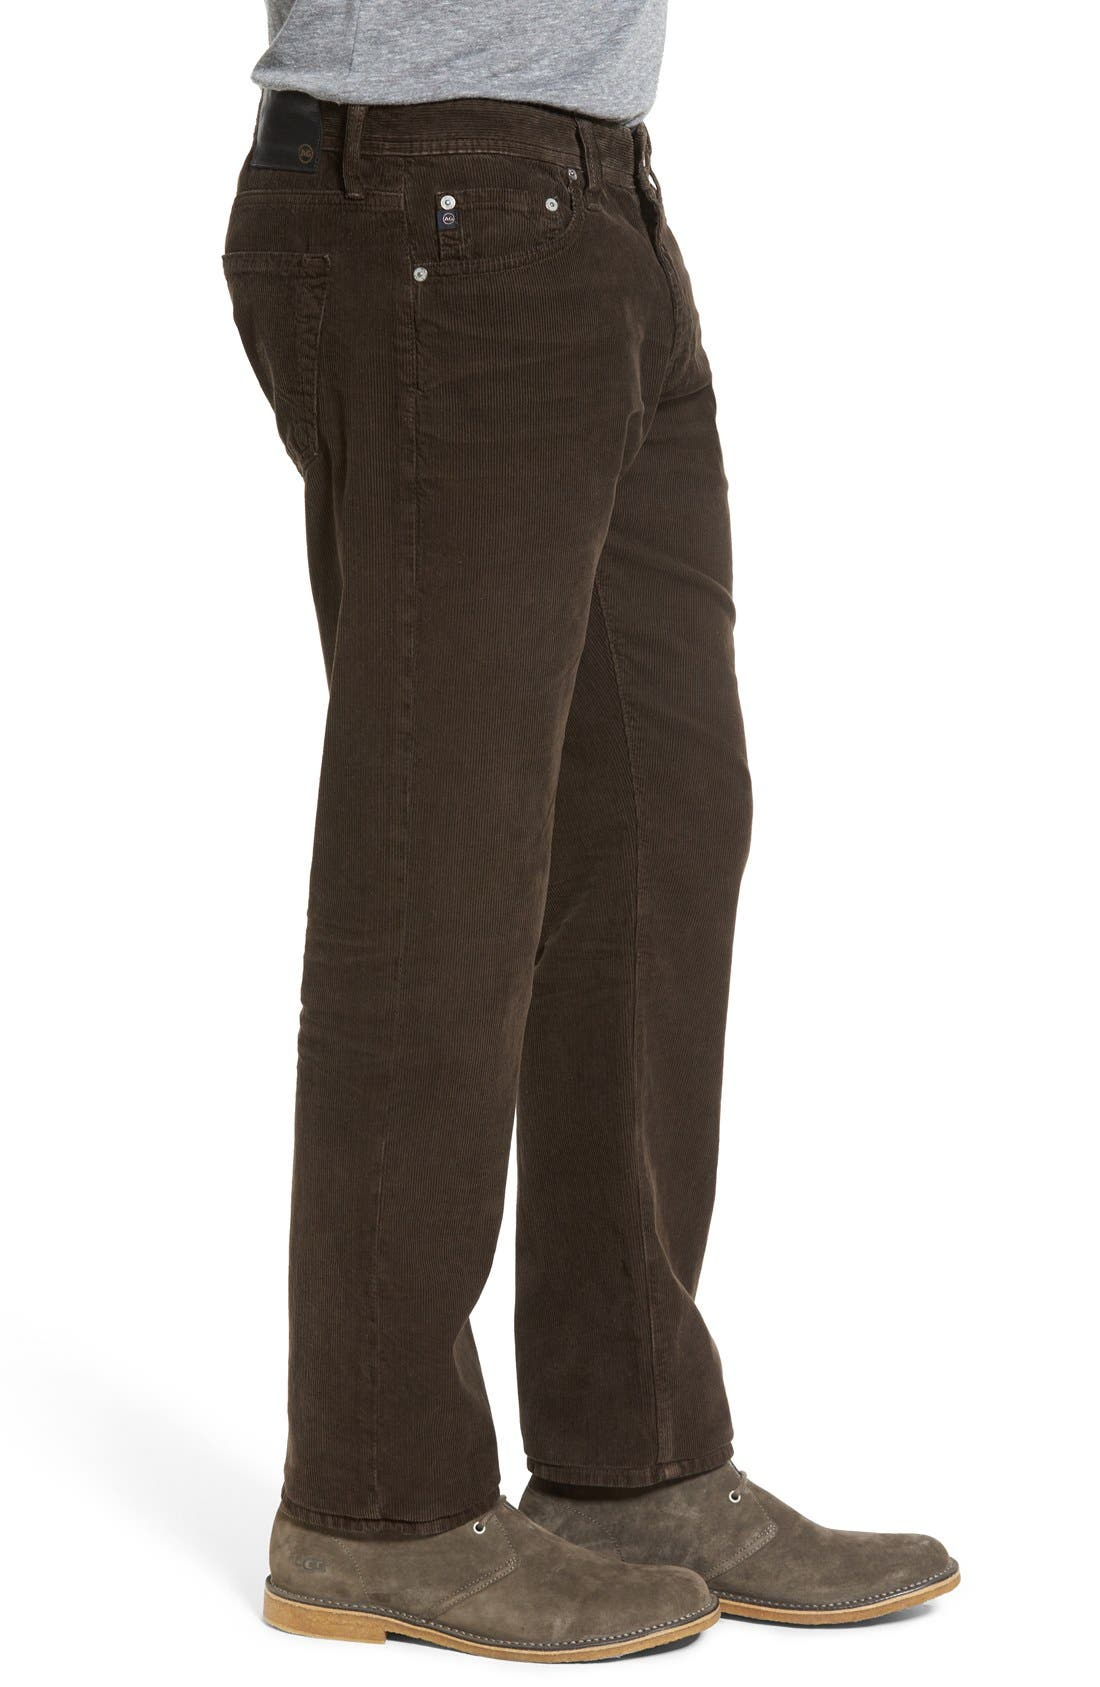 'Graduate' Tailored Straight Leg Corduroy Pants,                             Alternate thumbnail 38, color,